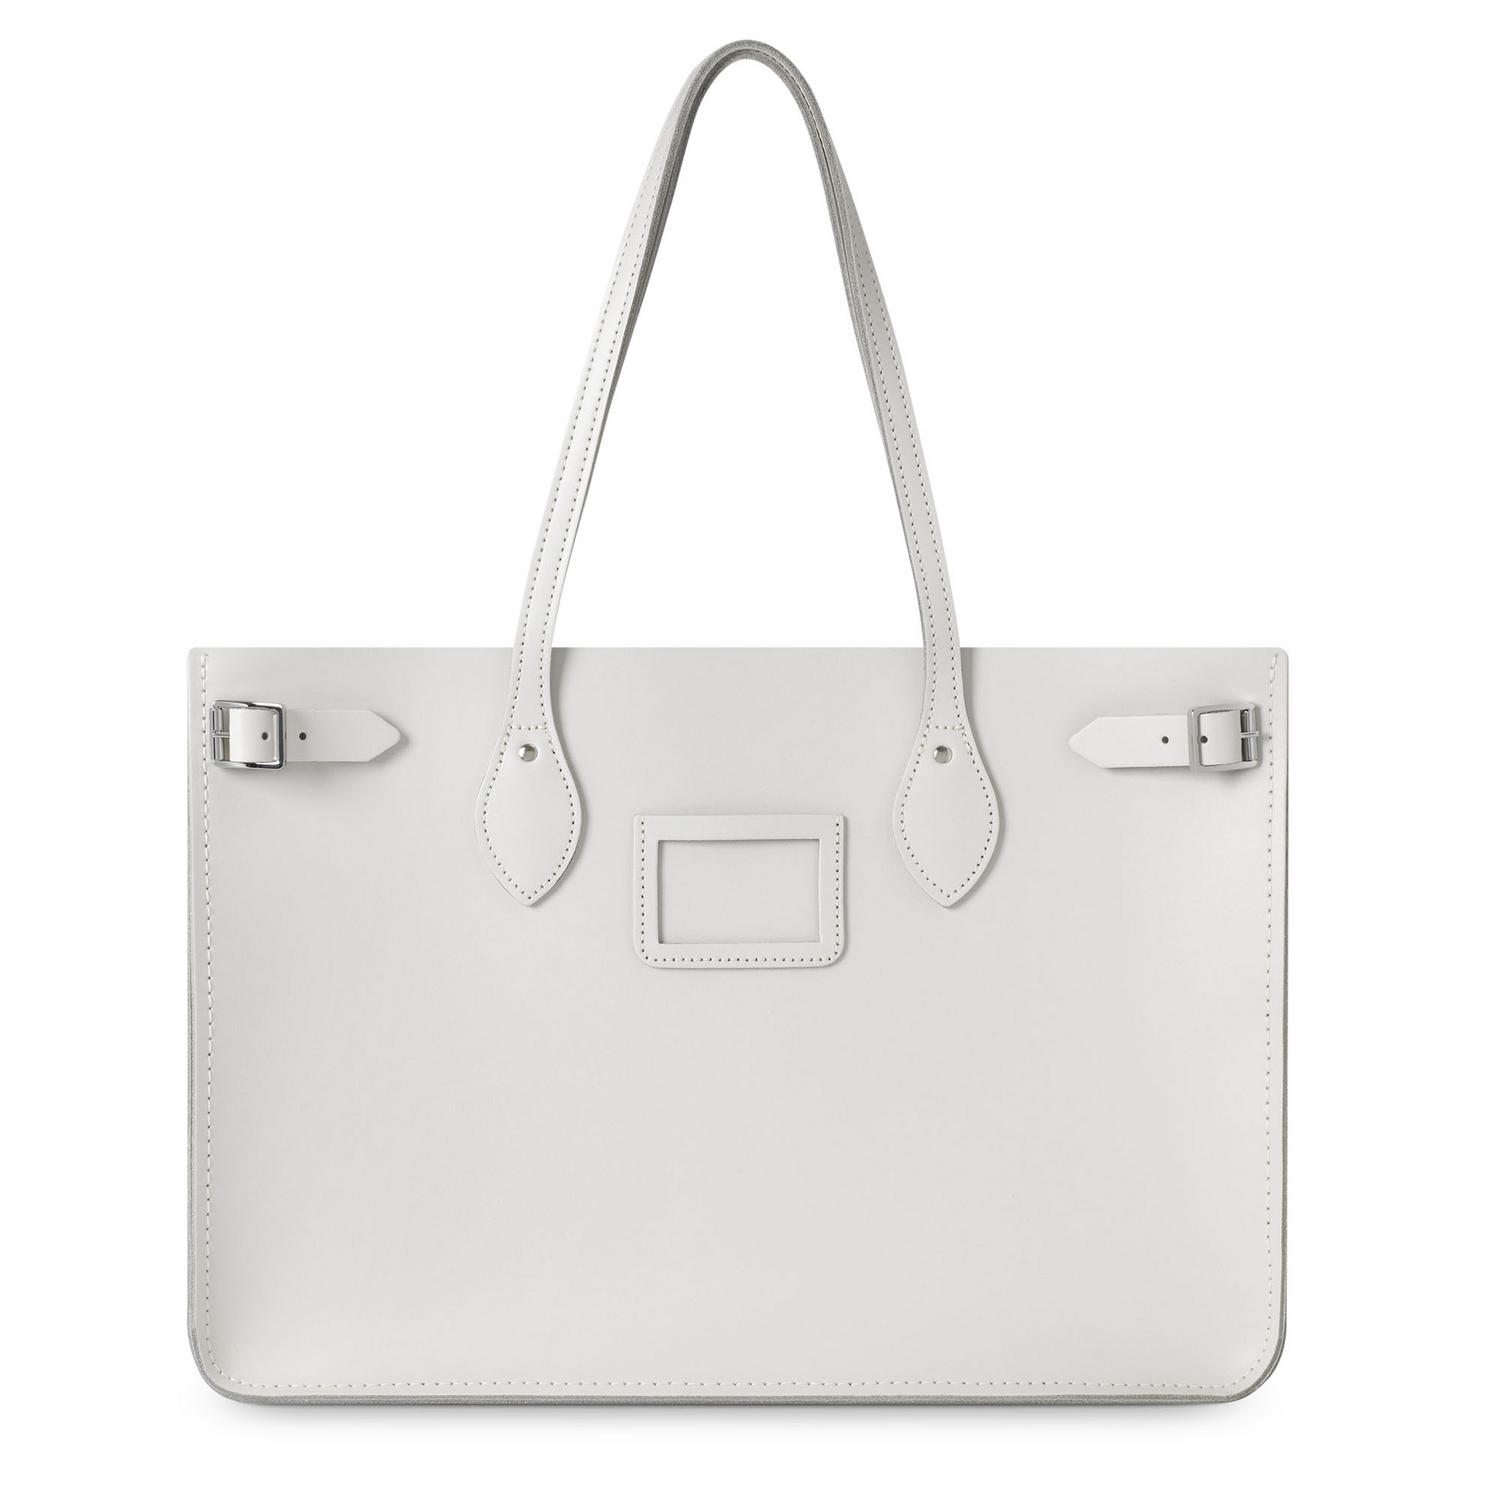 Clay East West Tote WAS $280 NOW $196